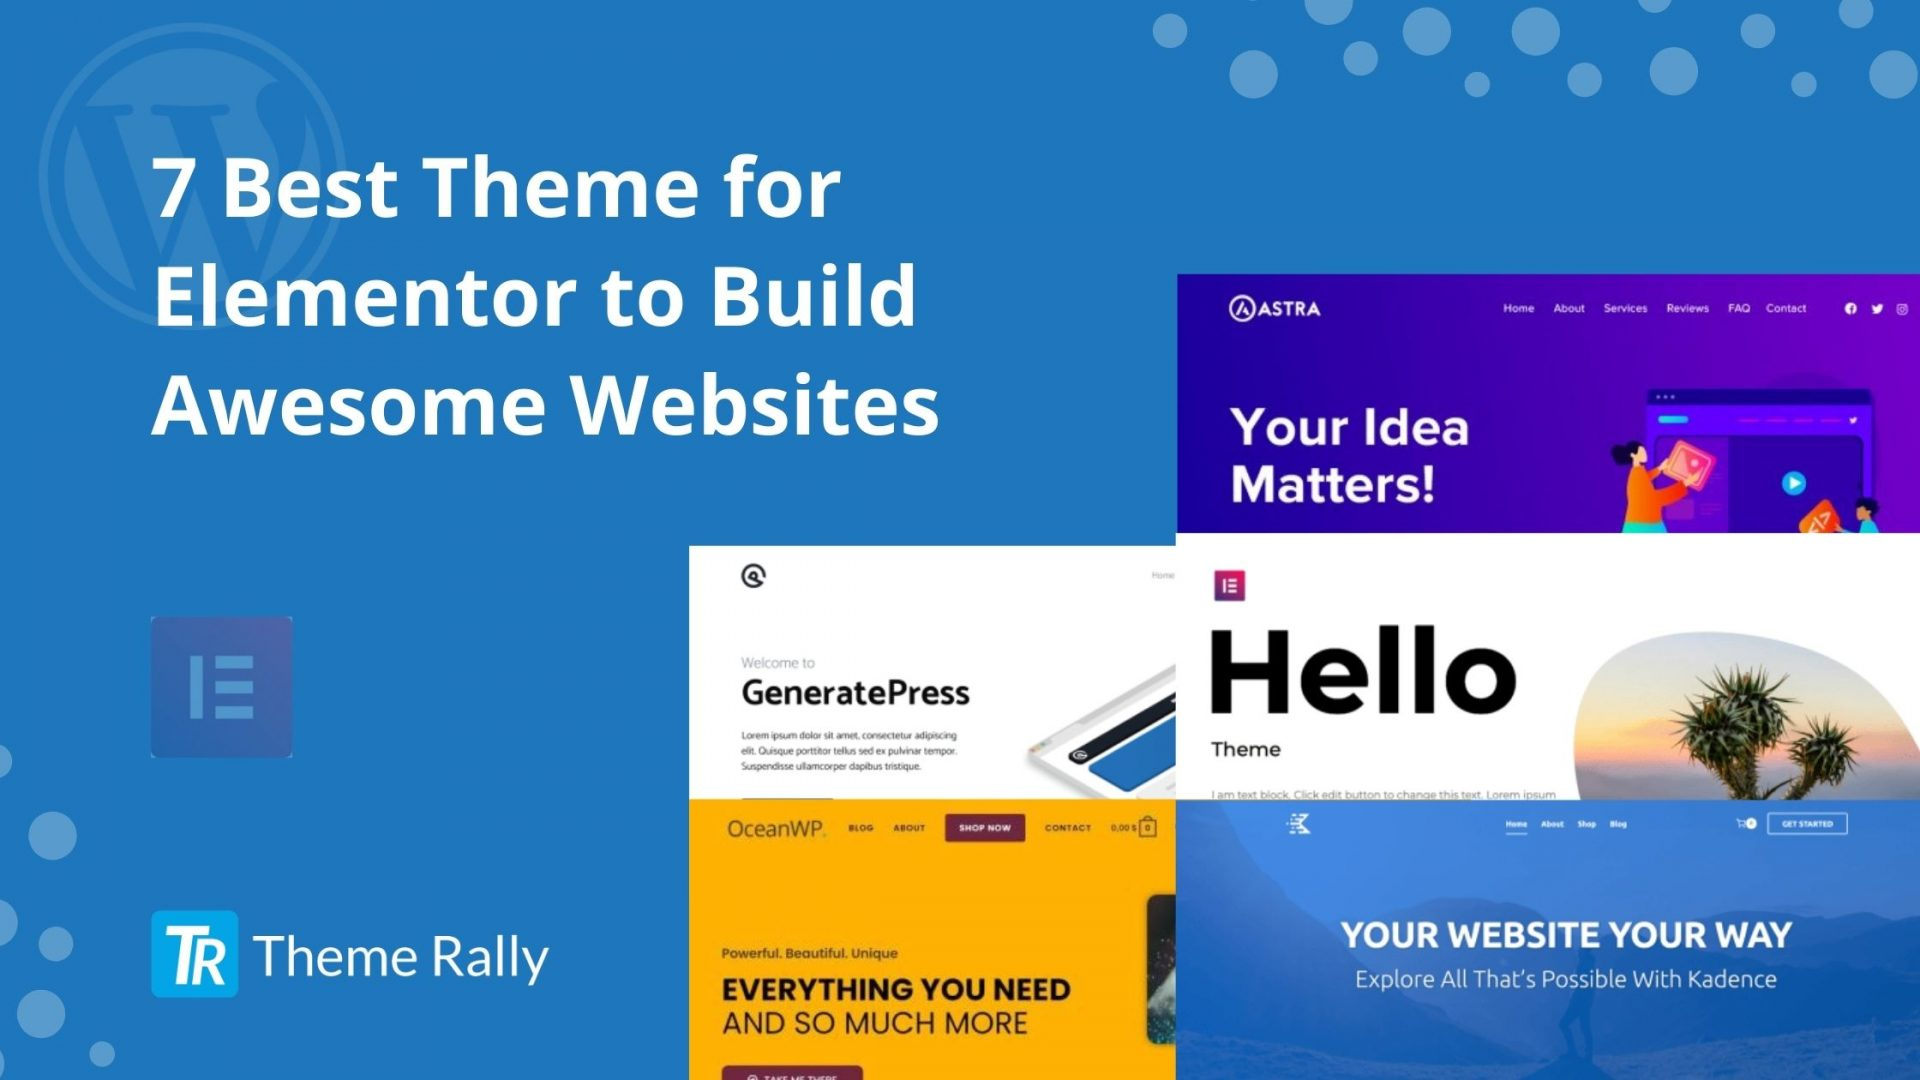 7 Best Theme for Elementor to Build Awesome Websites